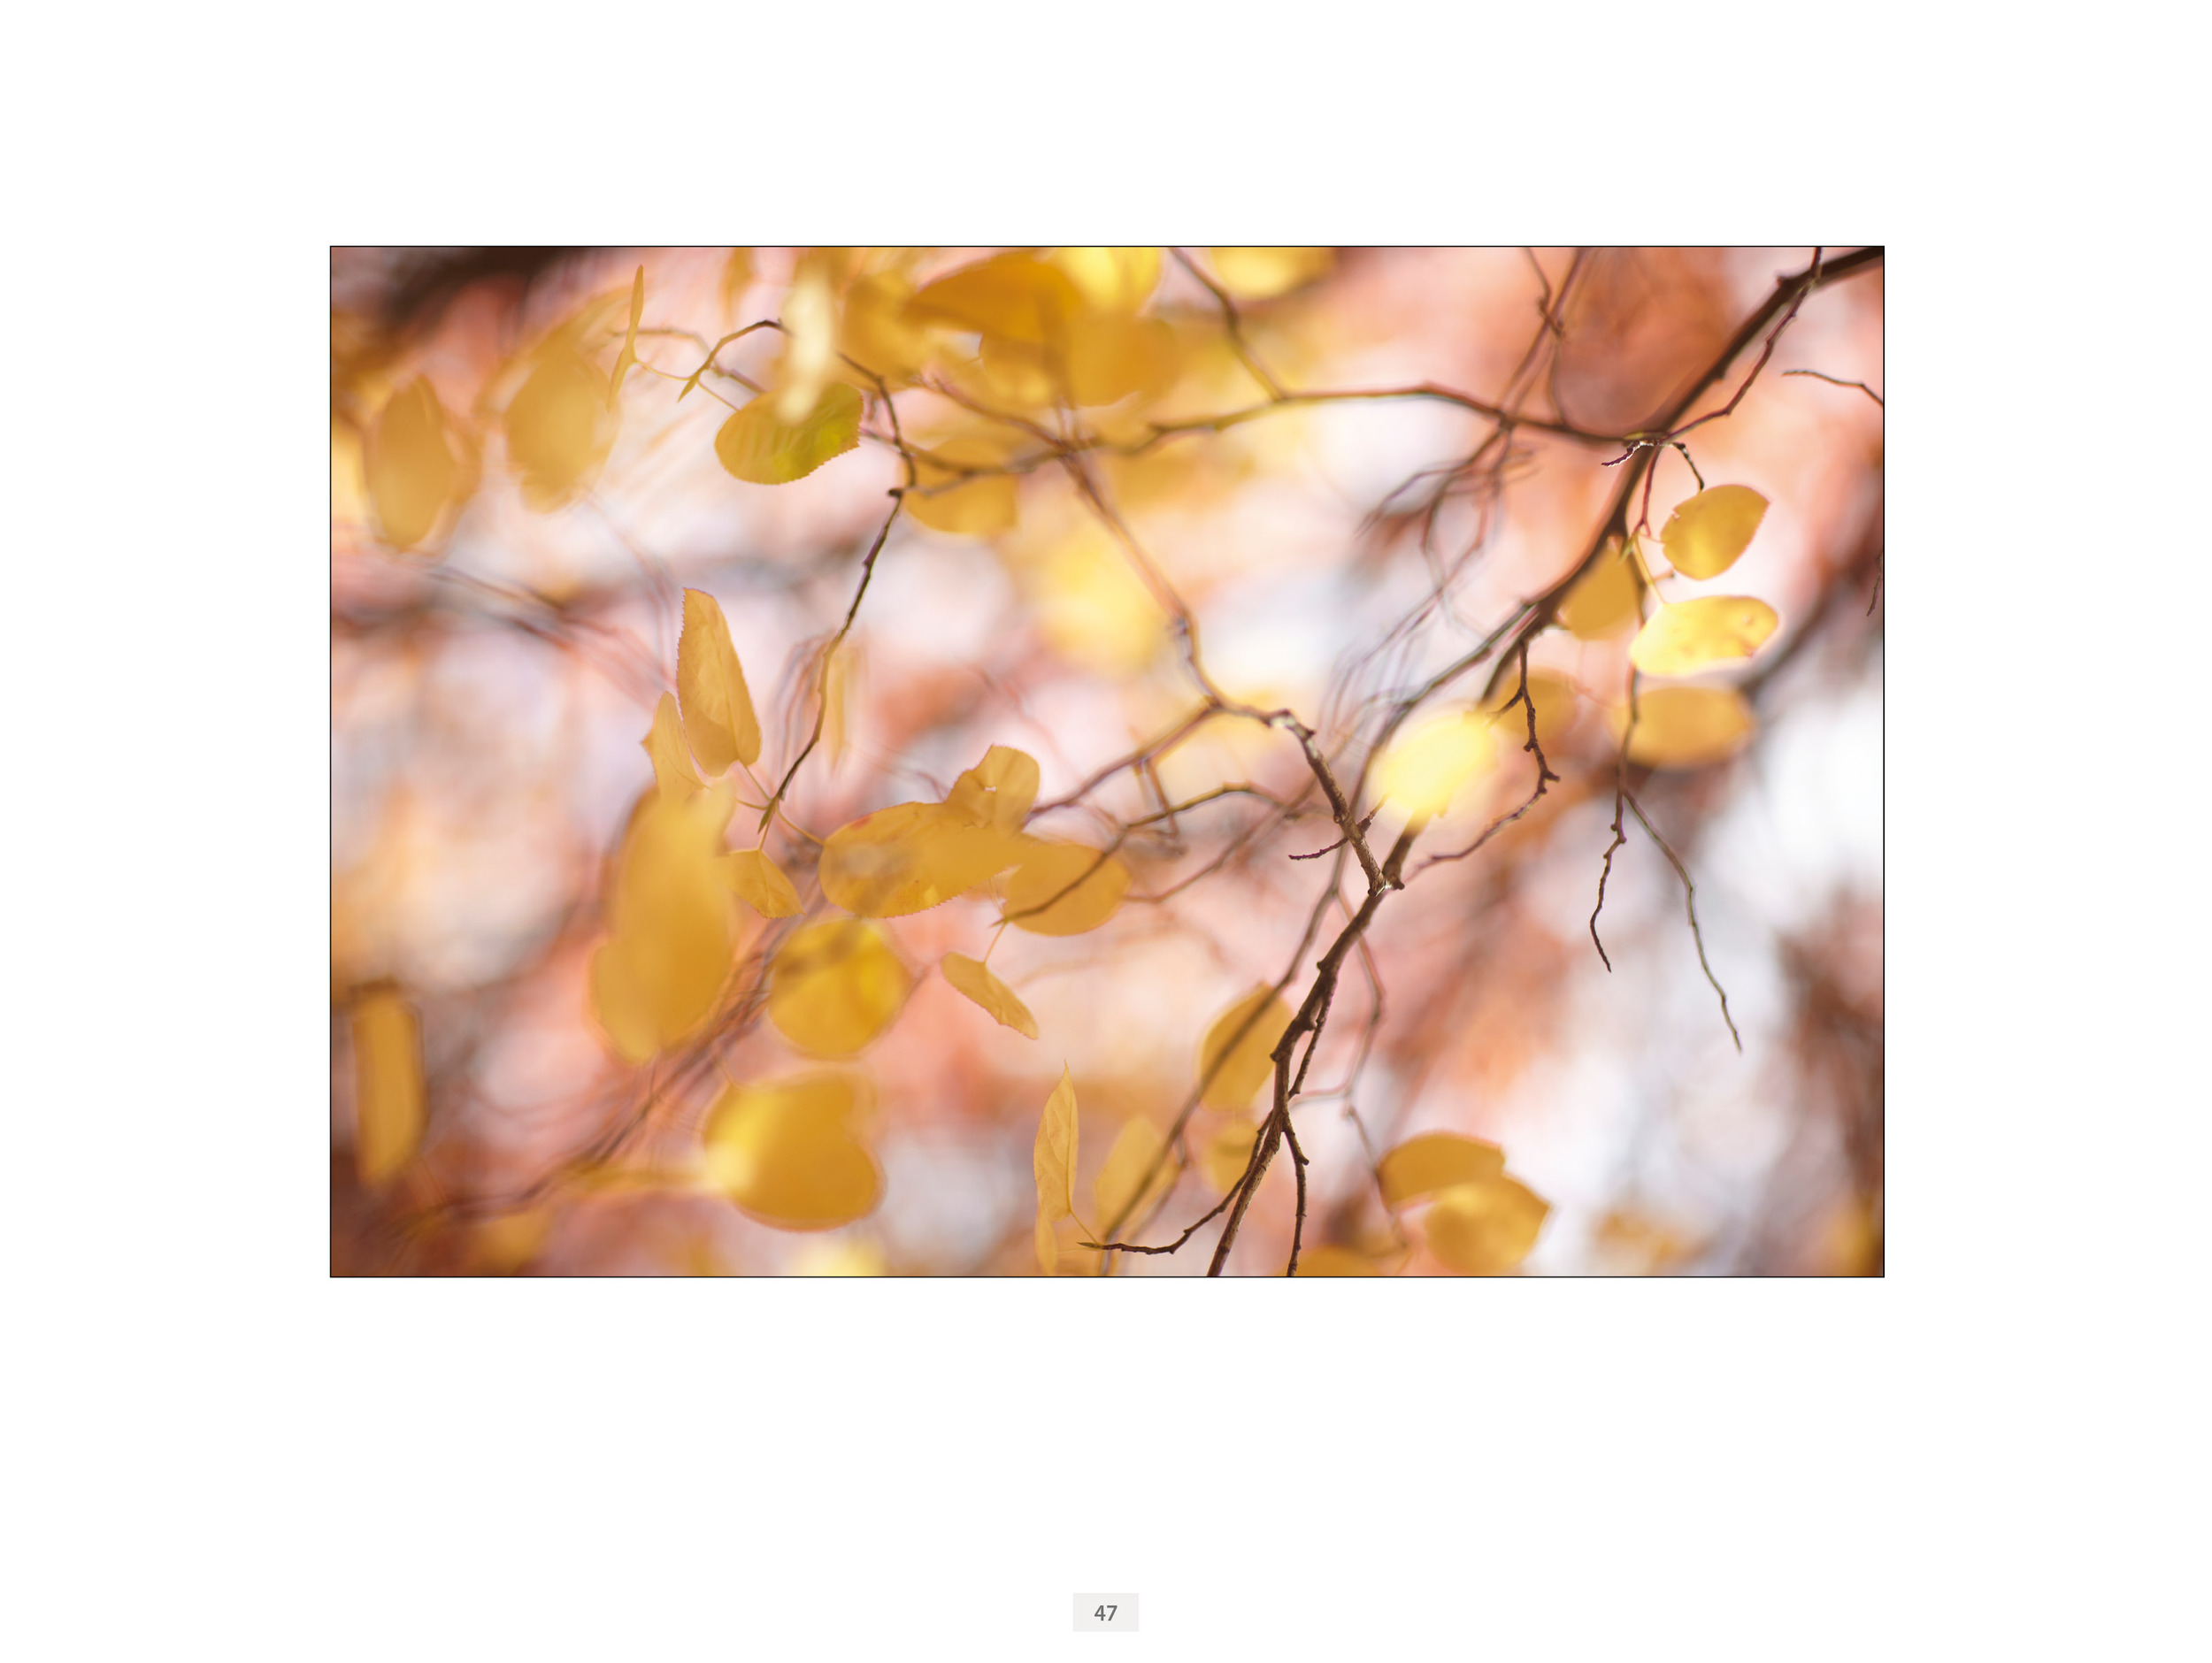 LG1 ebook for Flatbooks page 47 Autumn Leaf.jpg